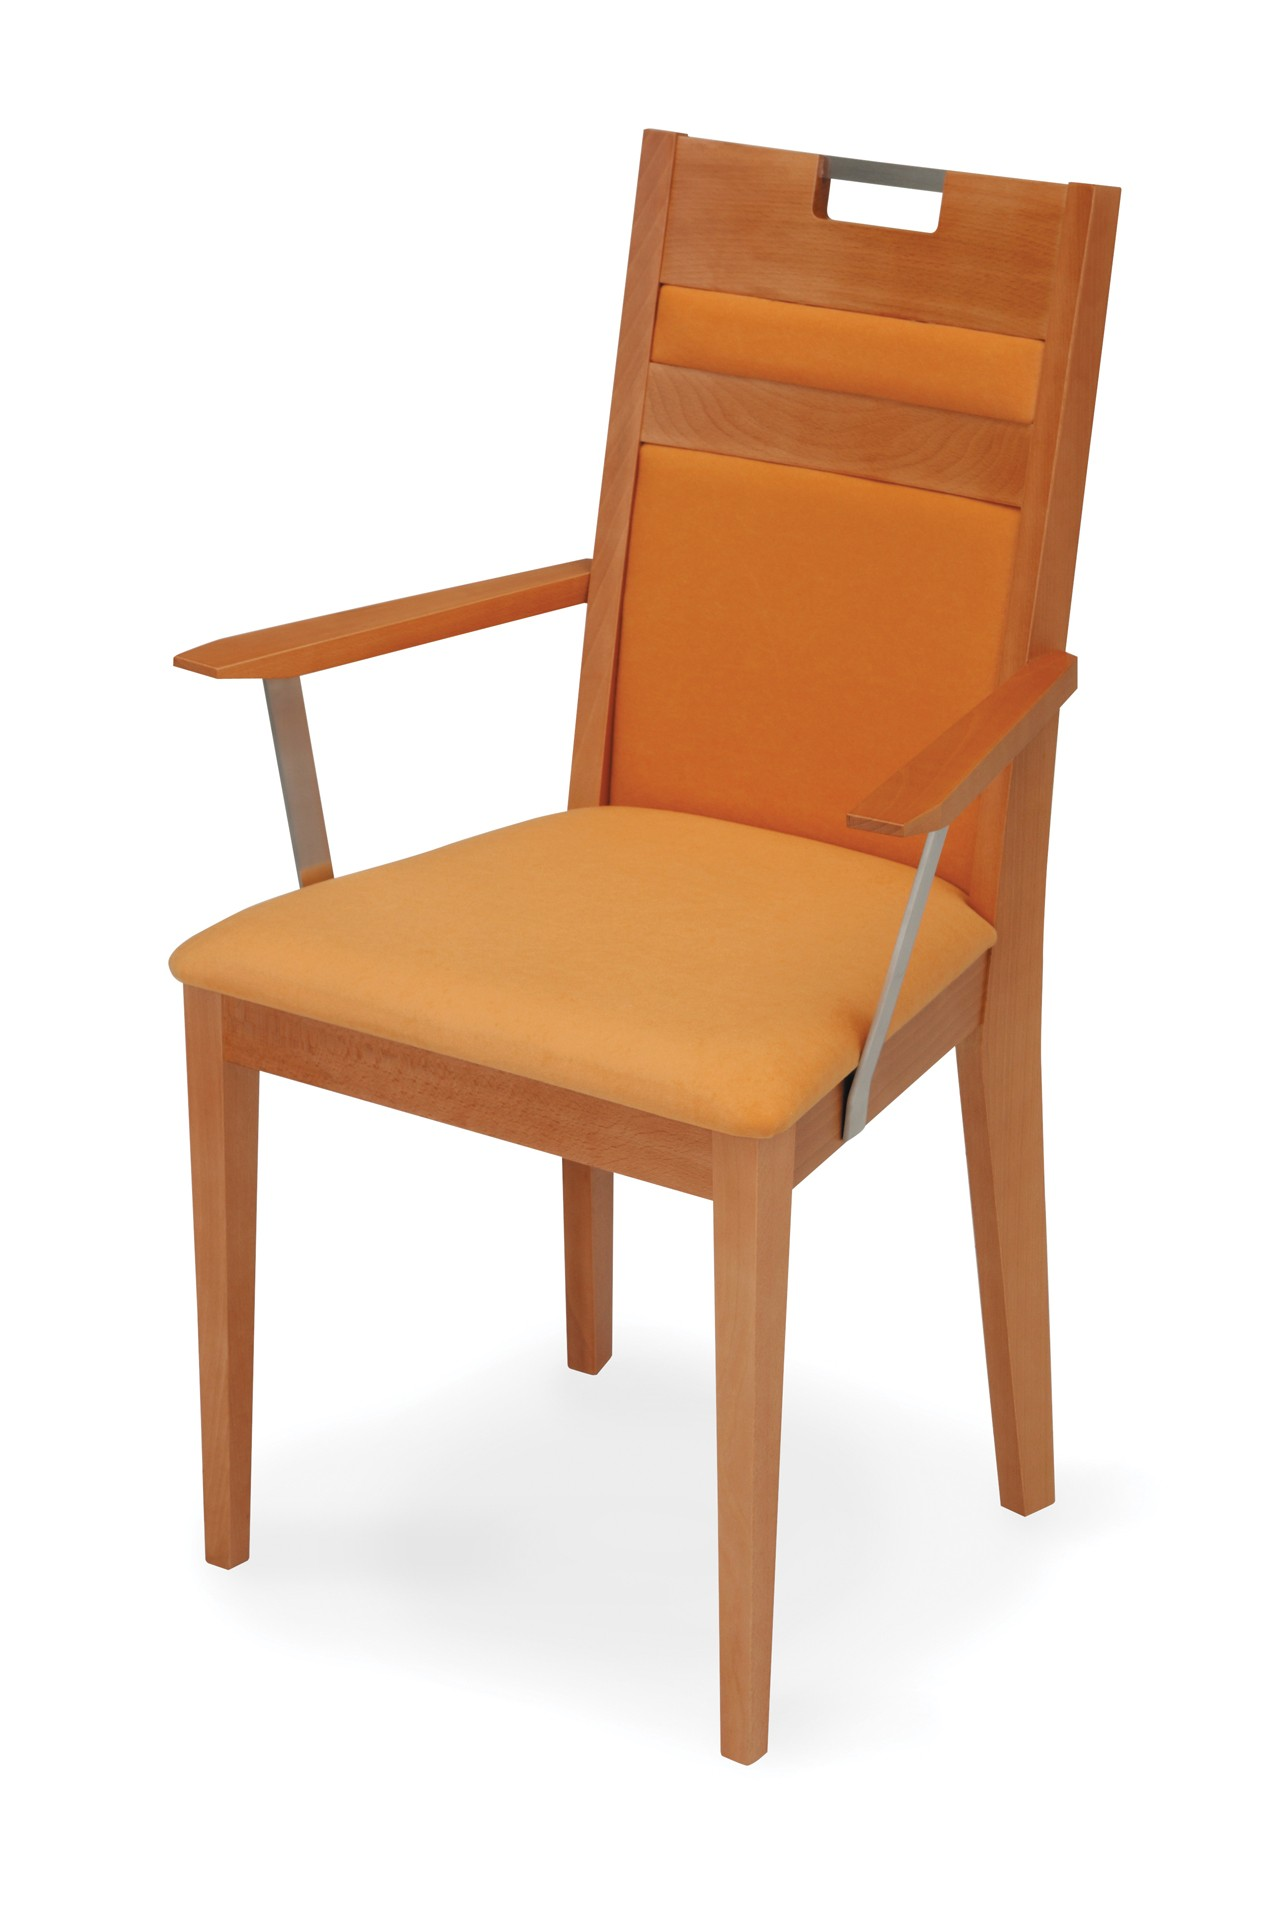 VENGE ARMCHAIR wholly upholstered with handle